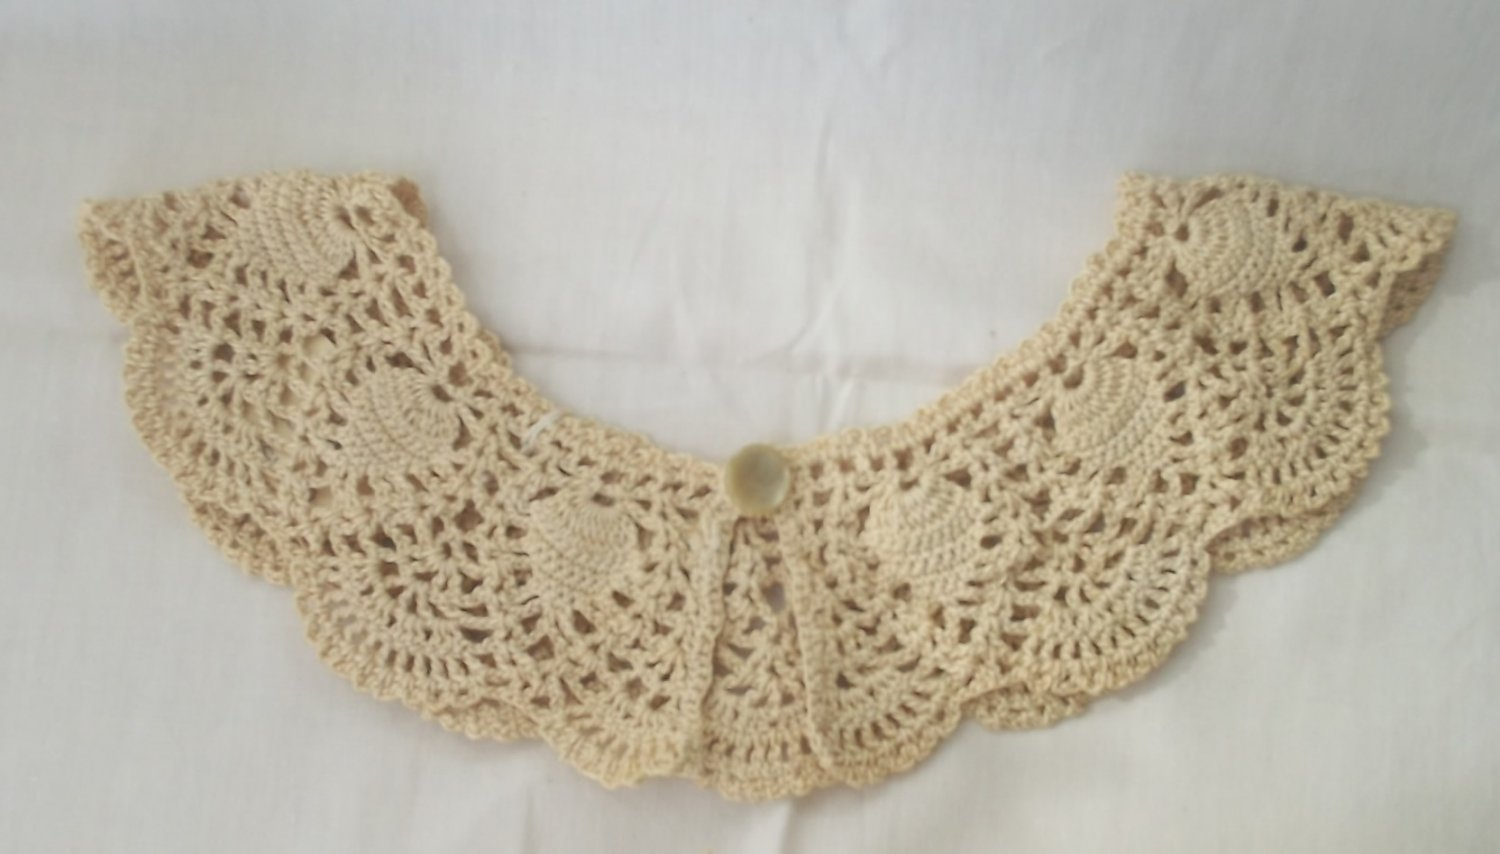 VINTAGE HAND MADE CROCHET LACE ECRU COLLAR ~HEART DESIGN~FOR SWEATER OR DRESS~PRETTY